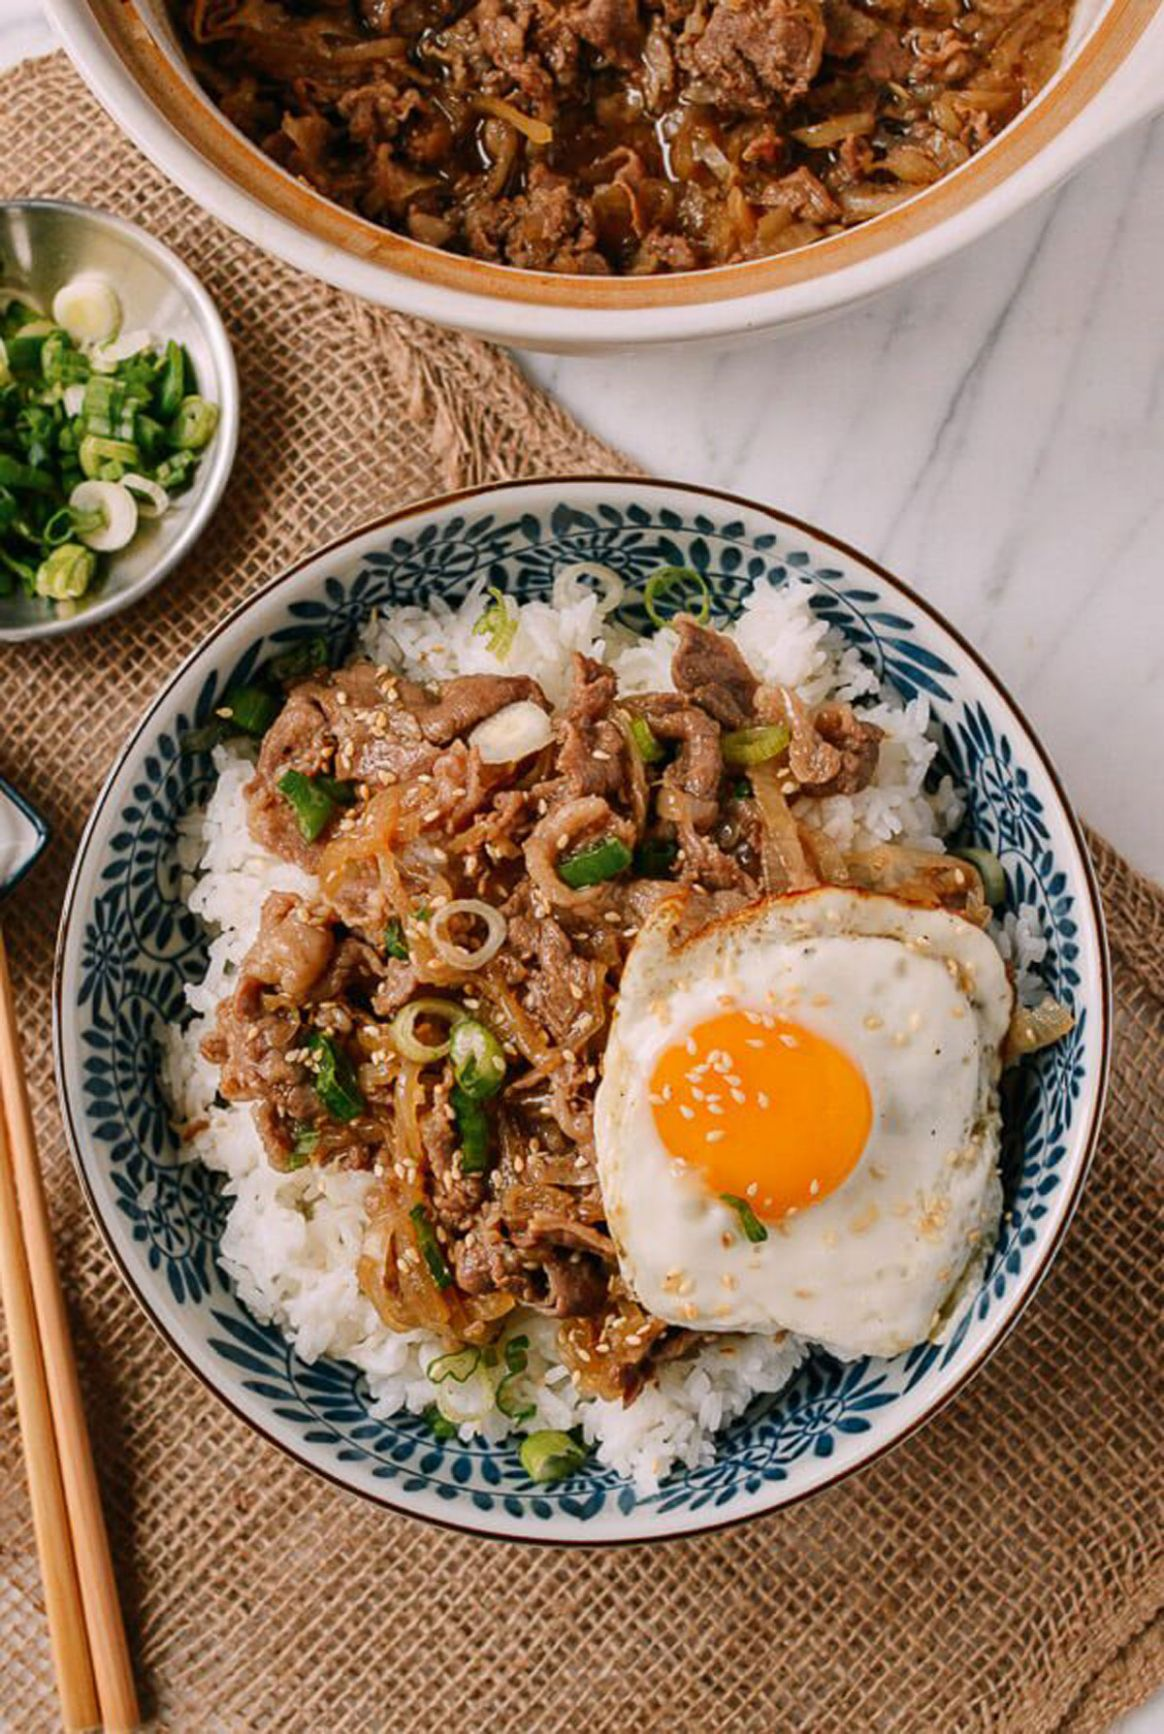 10 Easy Japanese Recipes If You're Just Starting Out | Kitchn